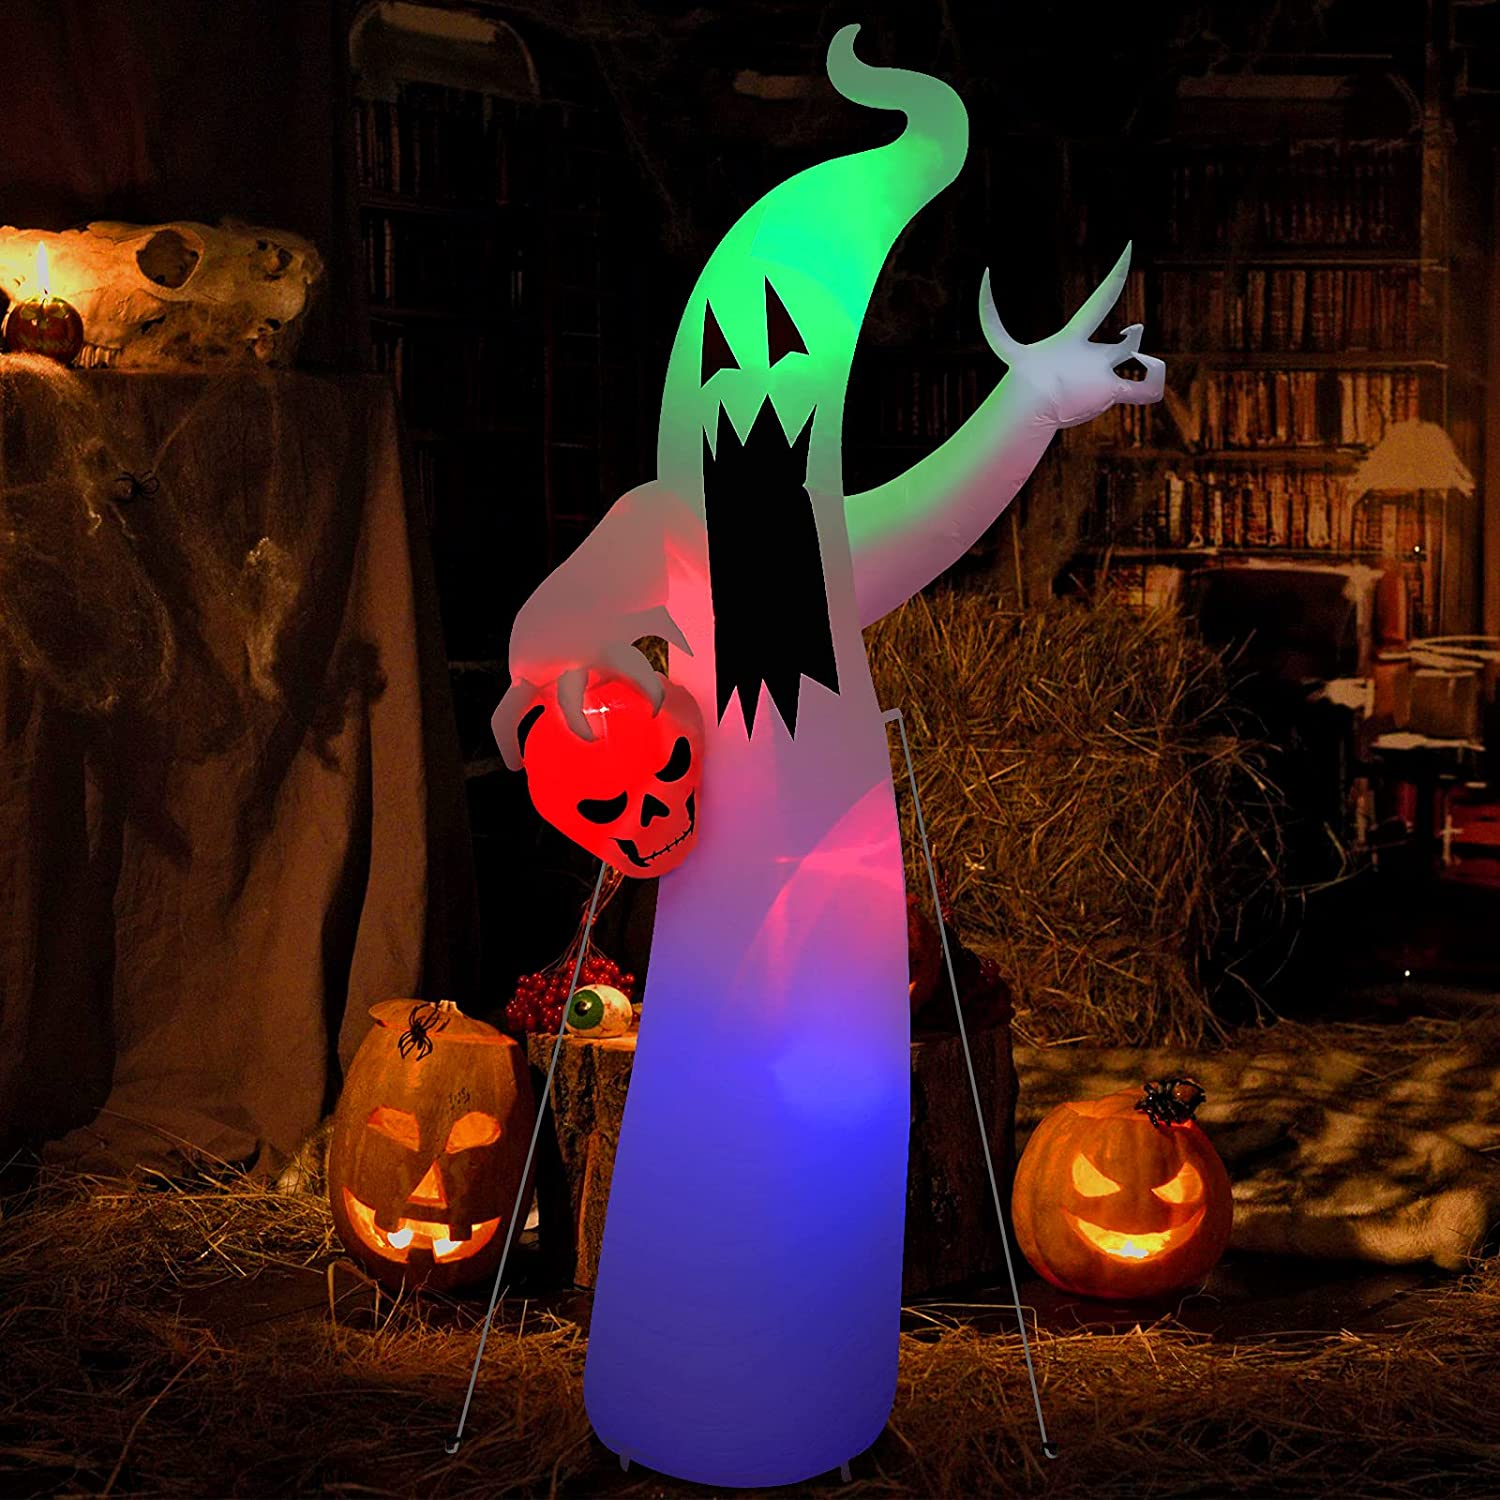 8 Ft Halloween Party Decorations Clearance Outdoor White Attention brand Regular dealer Ghost C